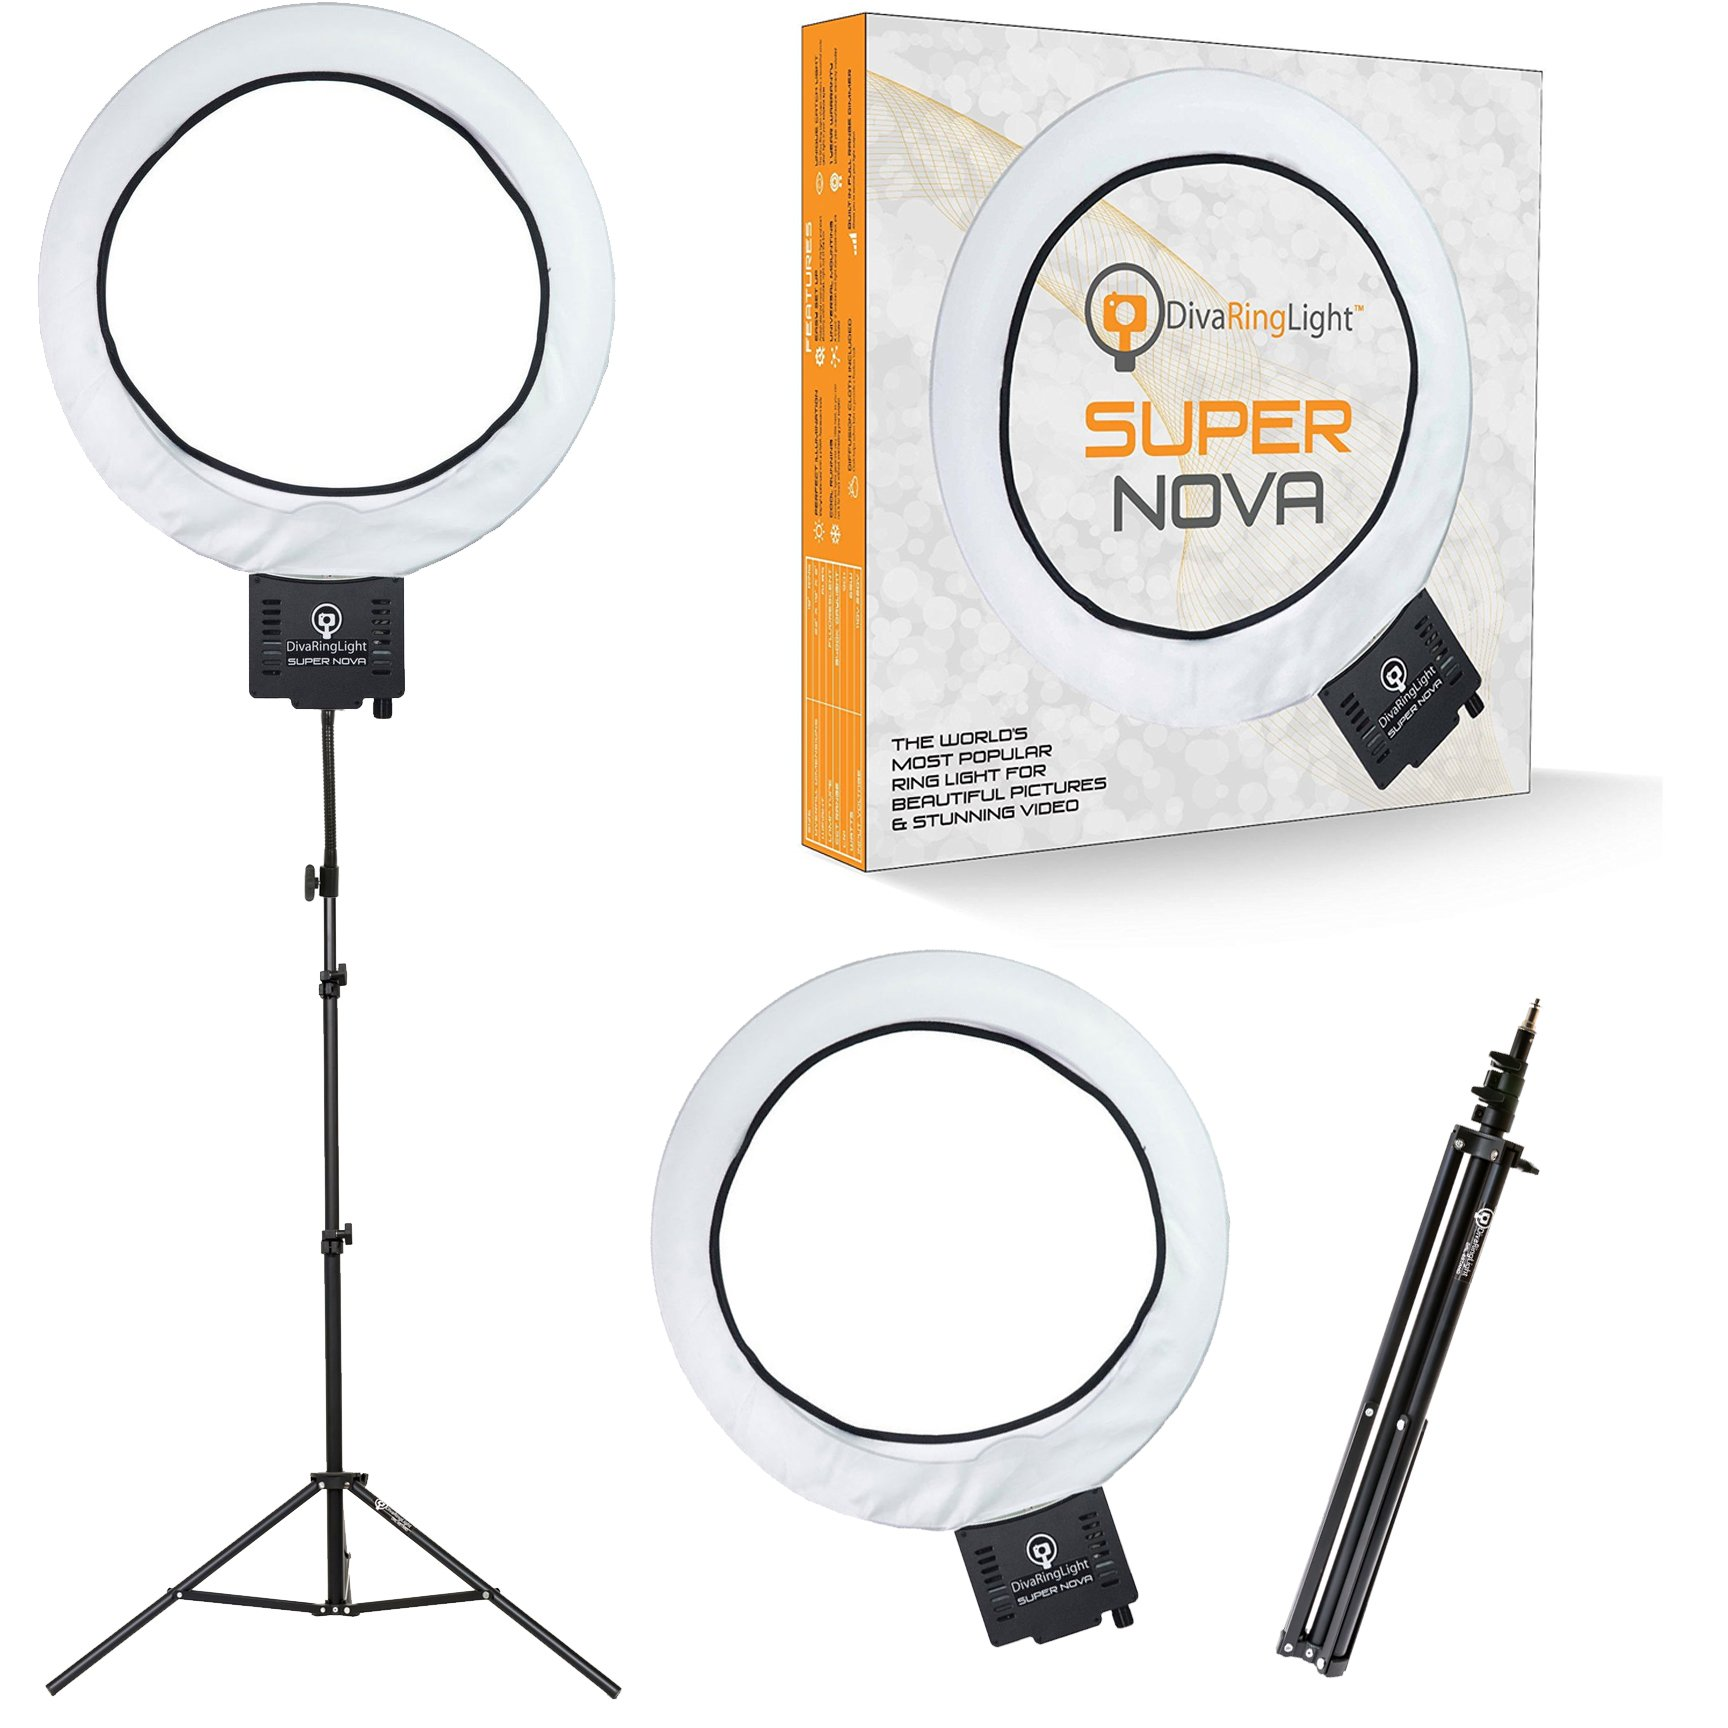 Diva Ring Light Super Nova 18'' Dimmable w/6' Stand - Professional Studio Lighting Kit for YouTube, Facebook Live, Twitch, Photography, and Beauty Blogging